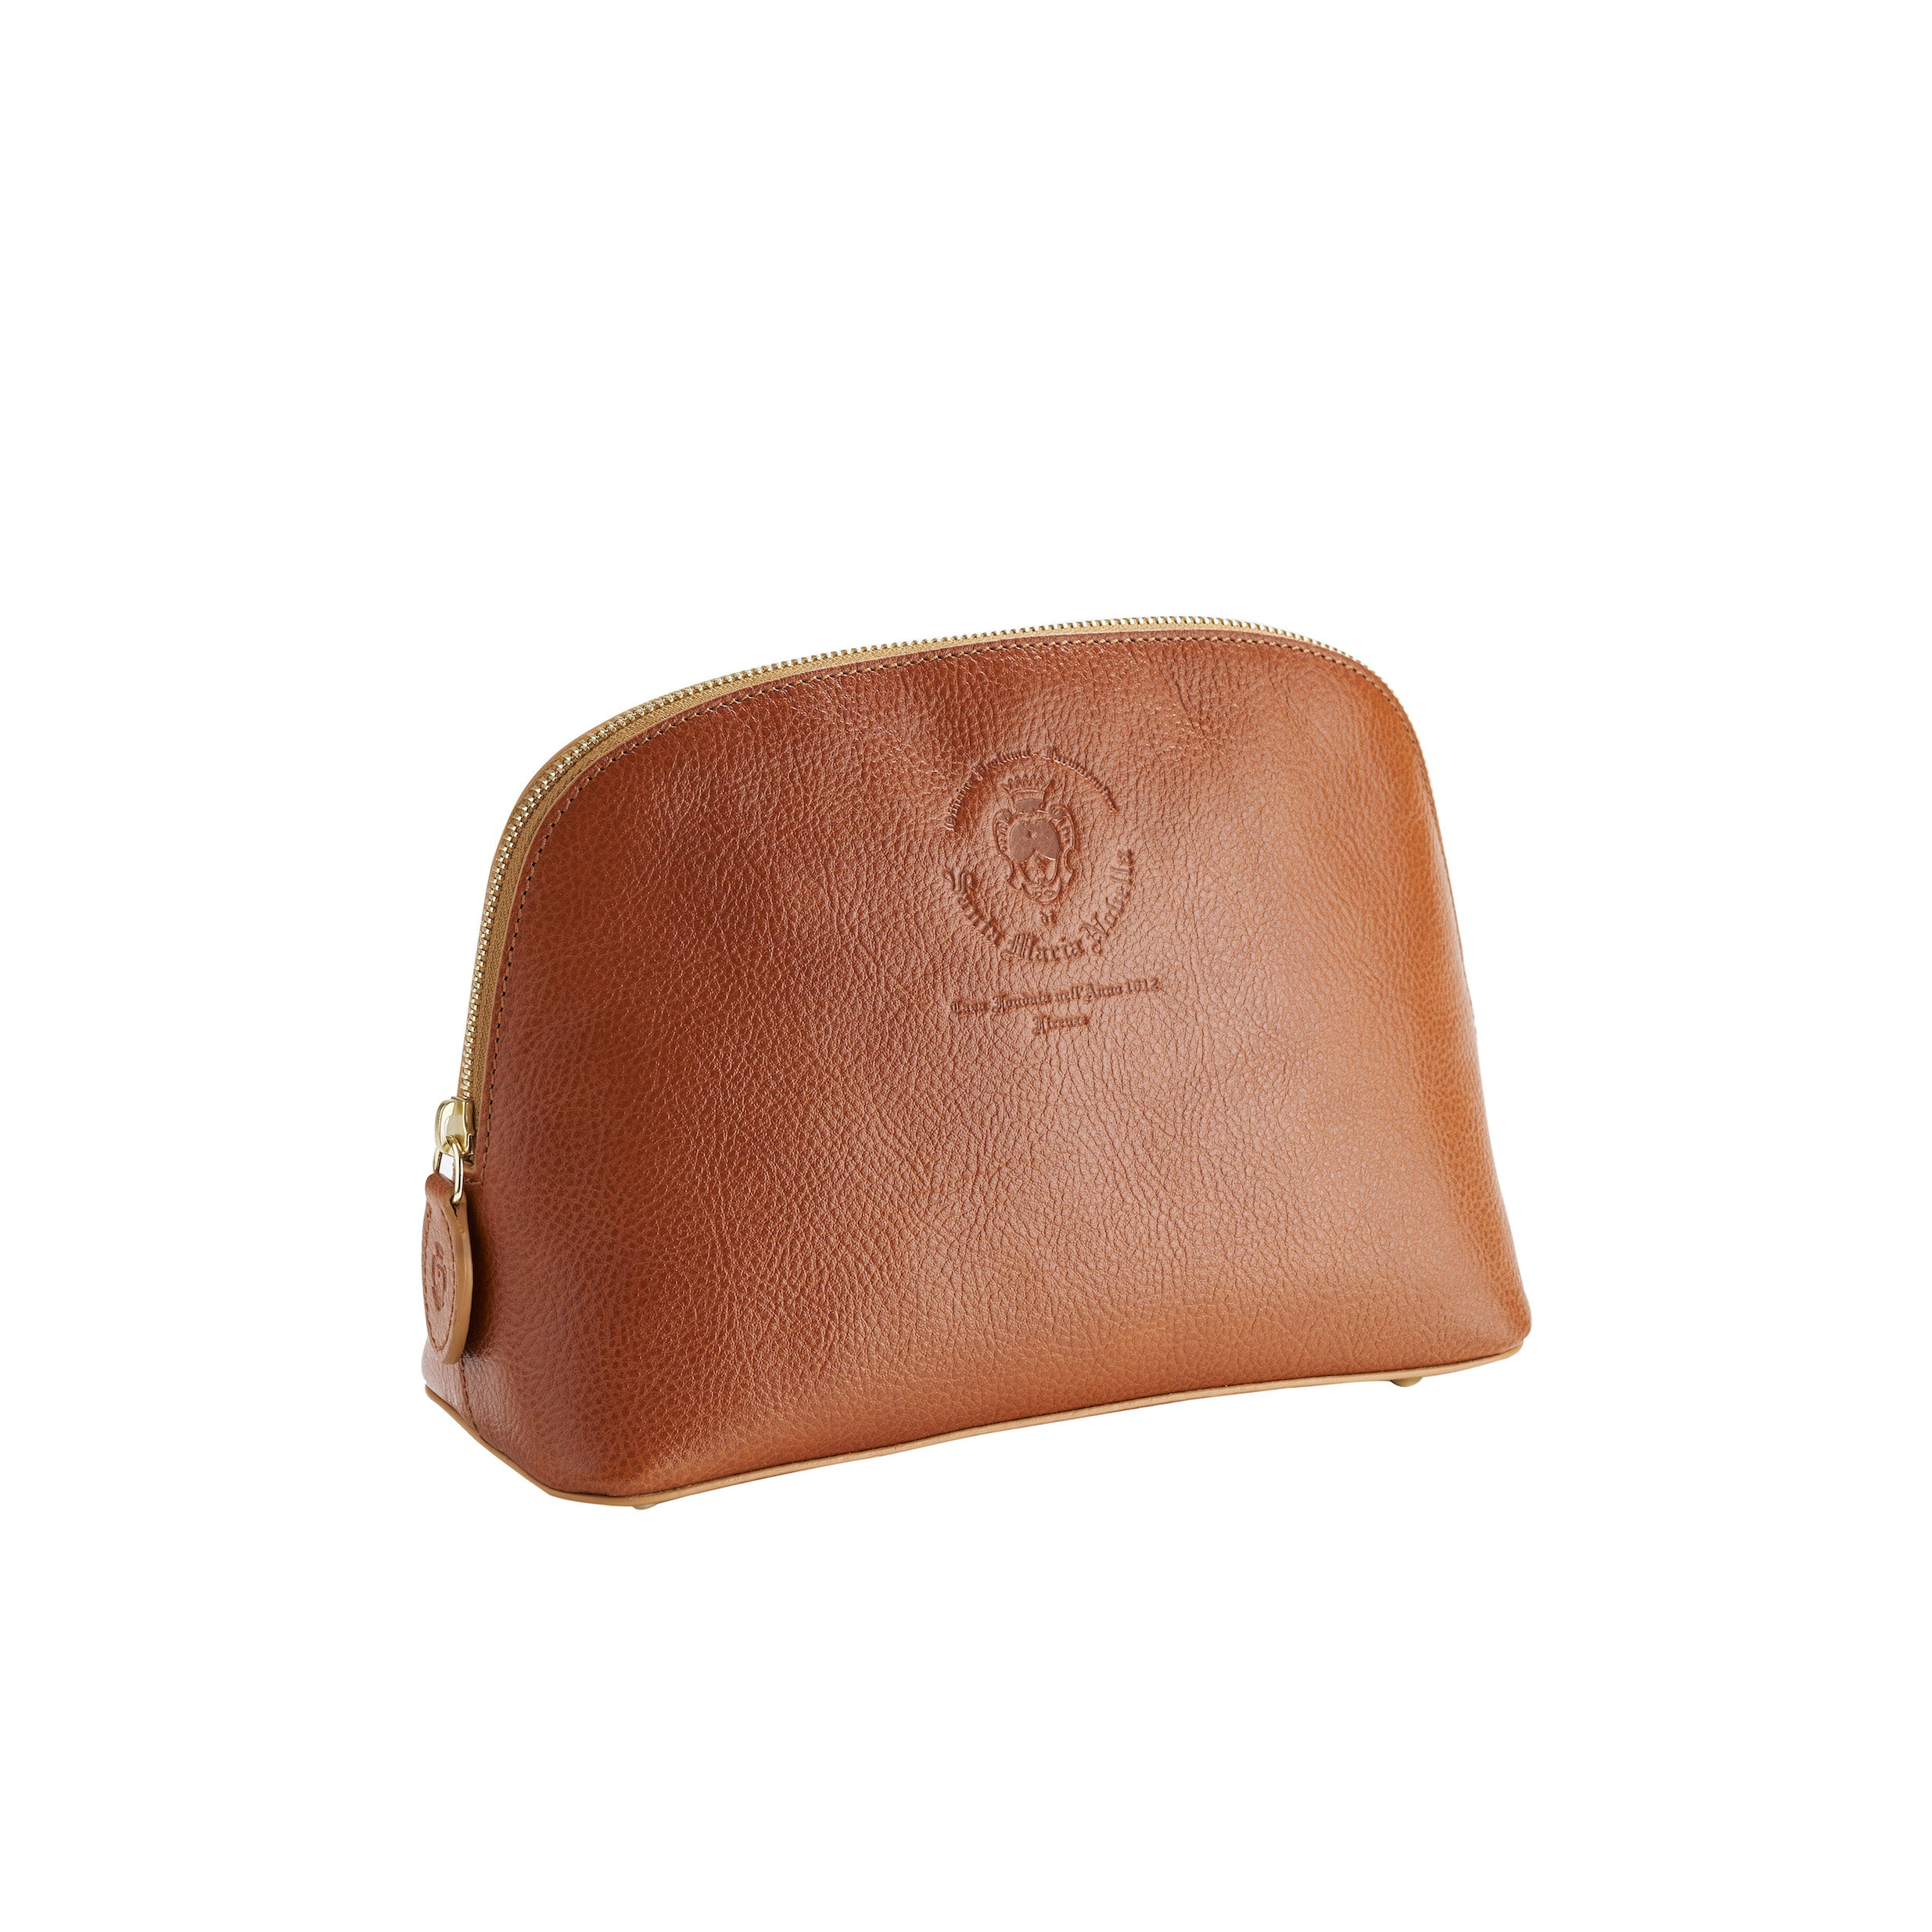 Santa Maria Novella Leather Cosmetic Pouch